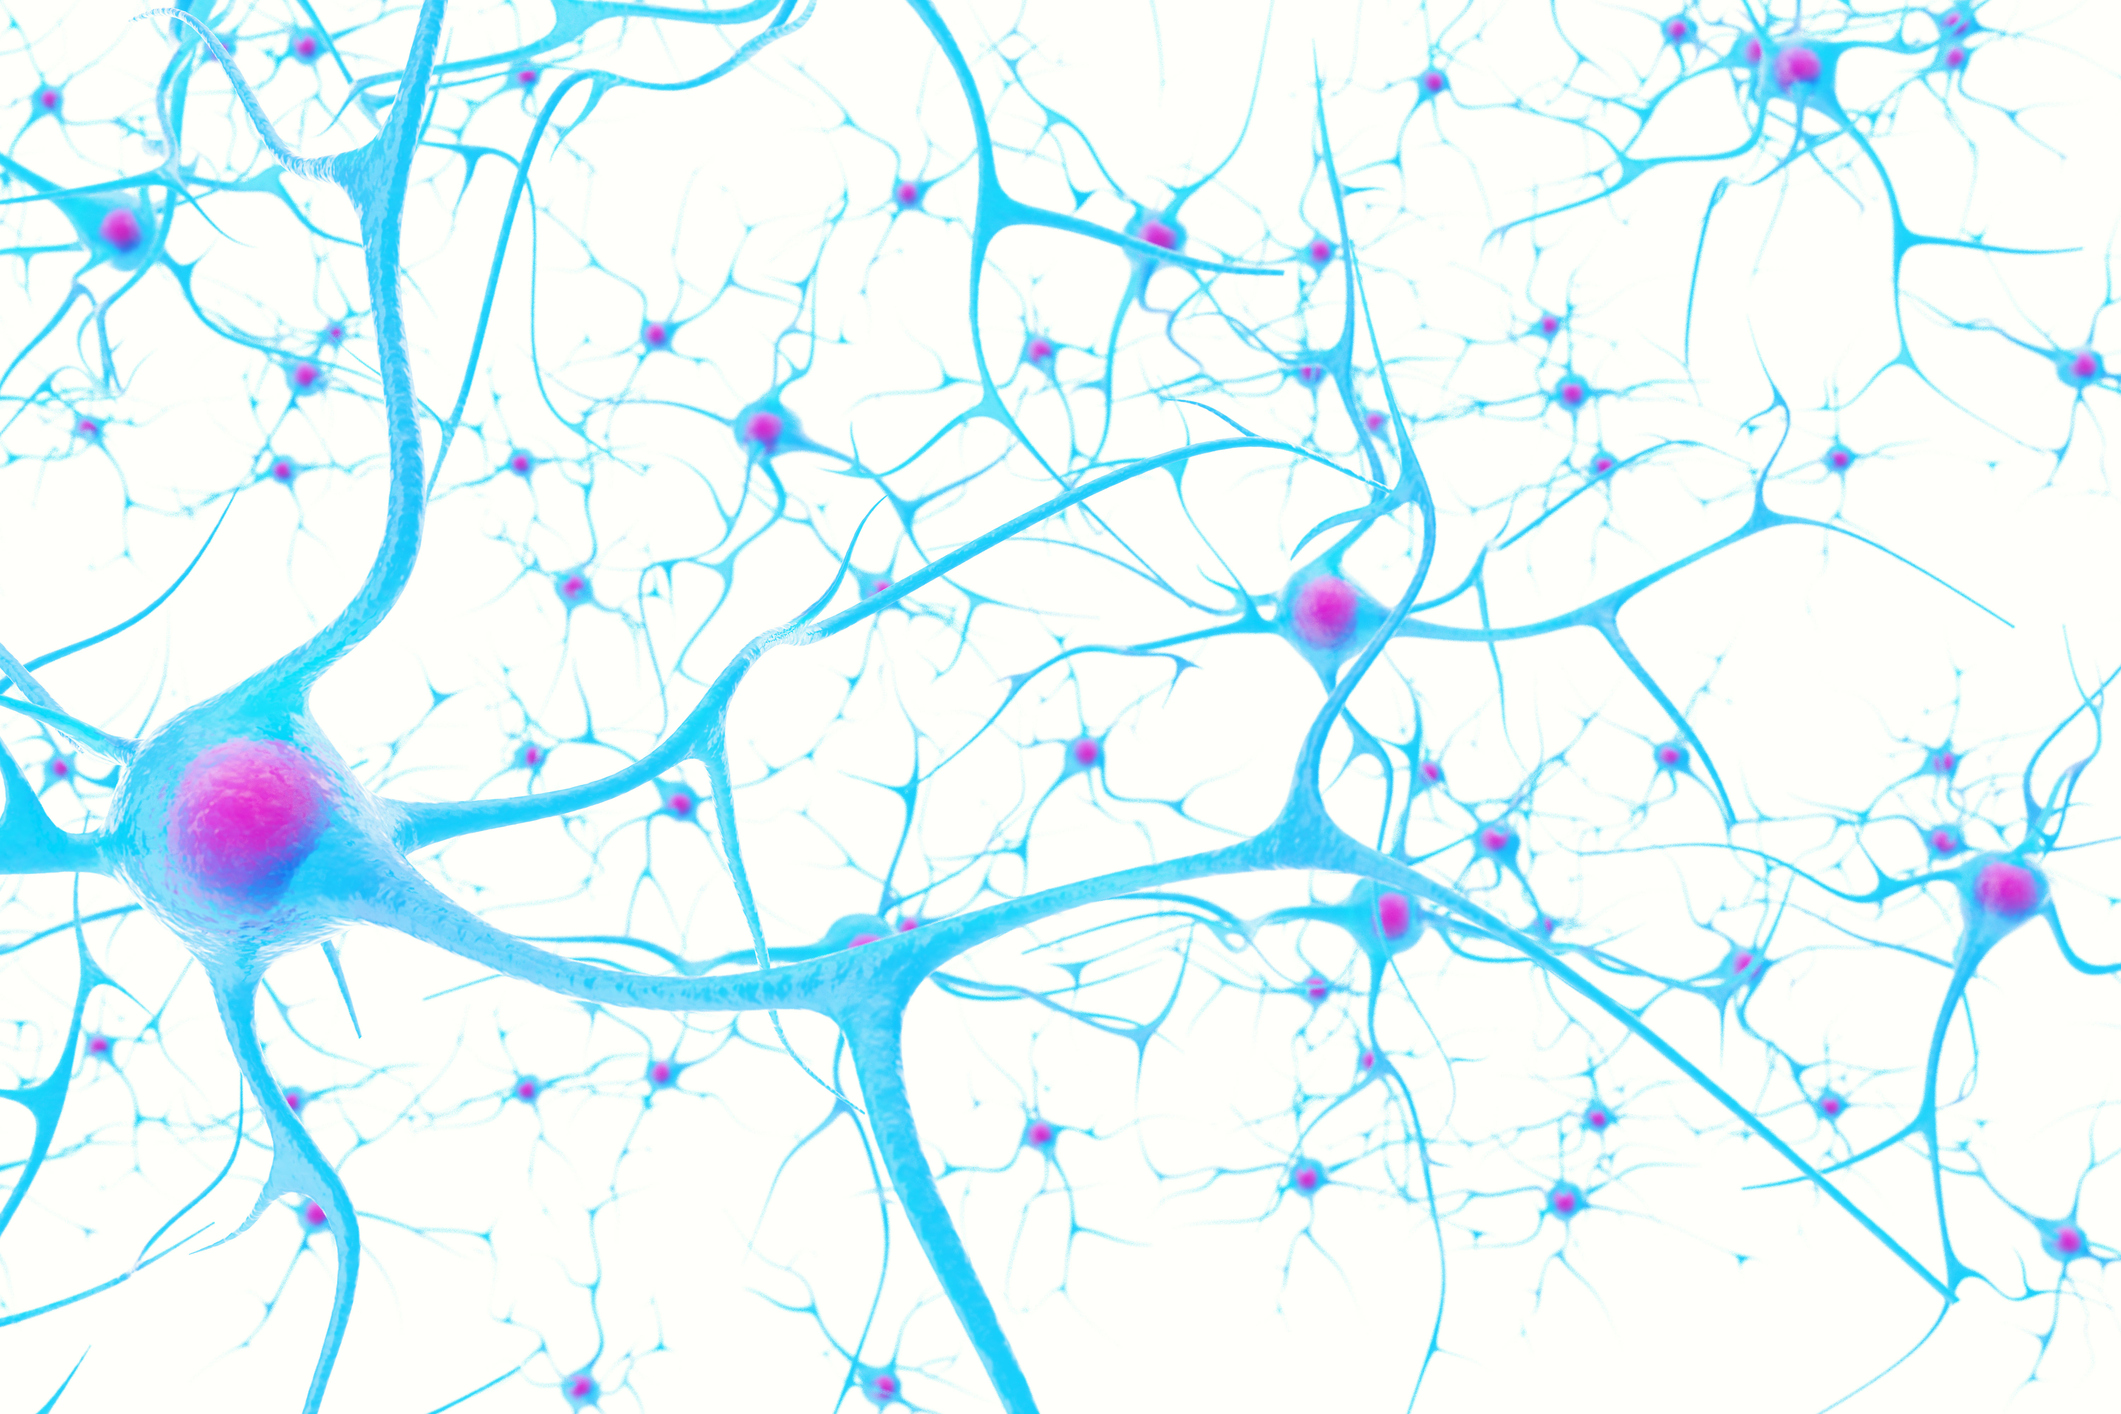 Neurons in the brain on white background with focus effect 3d illustration